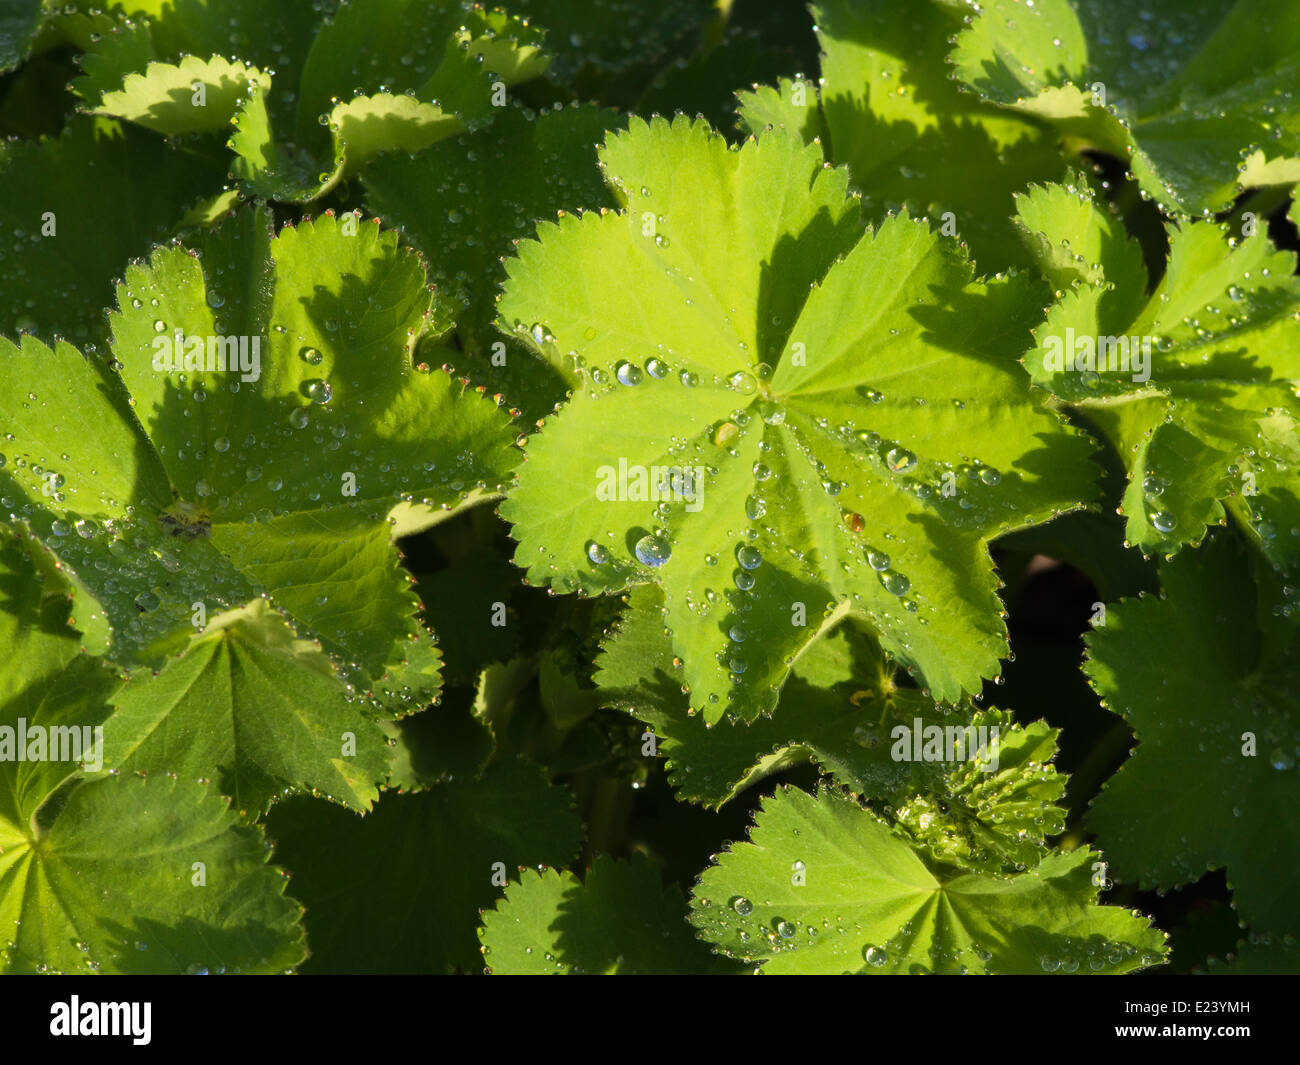 Alchemilla, Lady's Mantle, close up of leaves with dewdrops - Stock Image